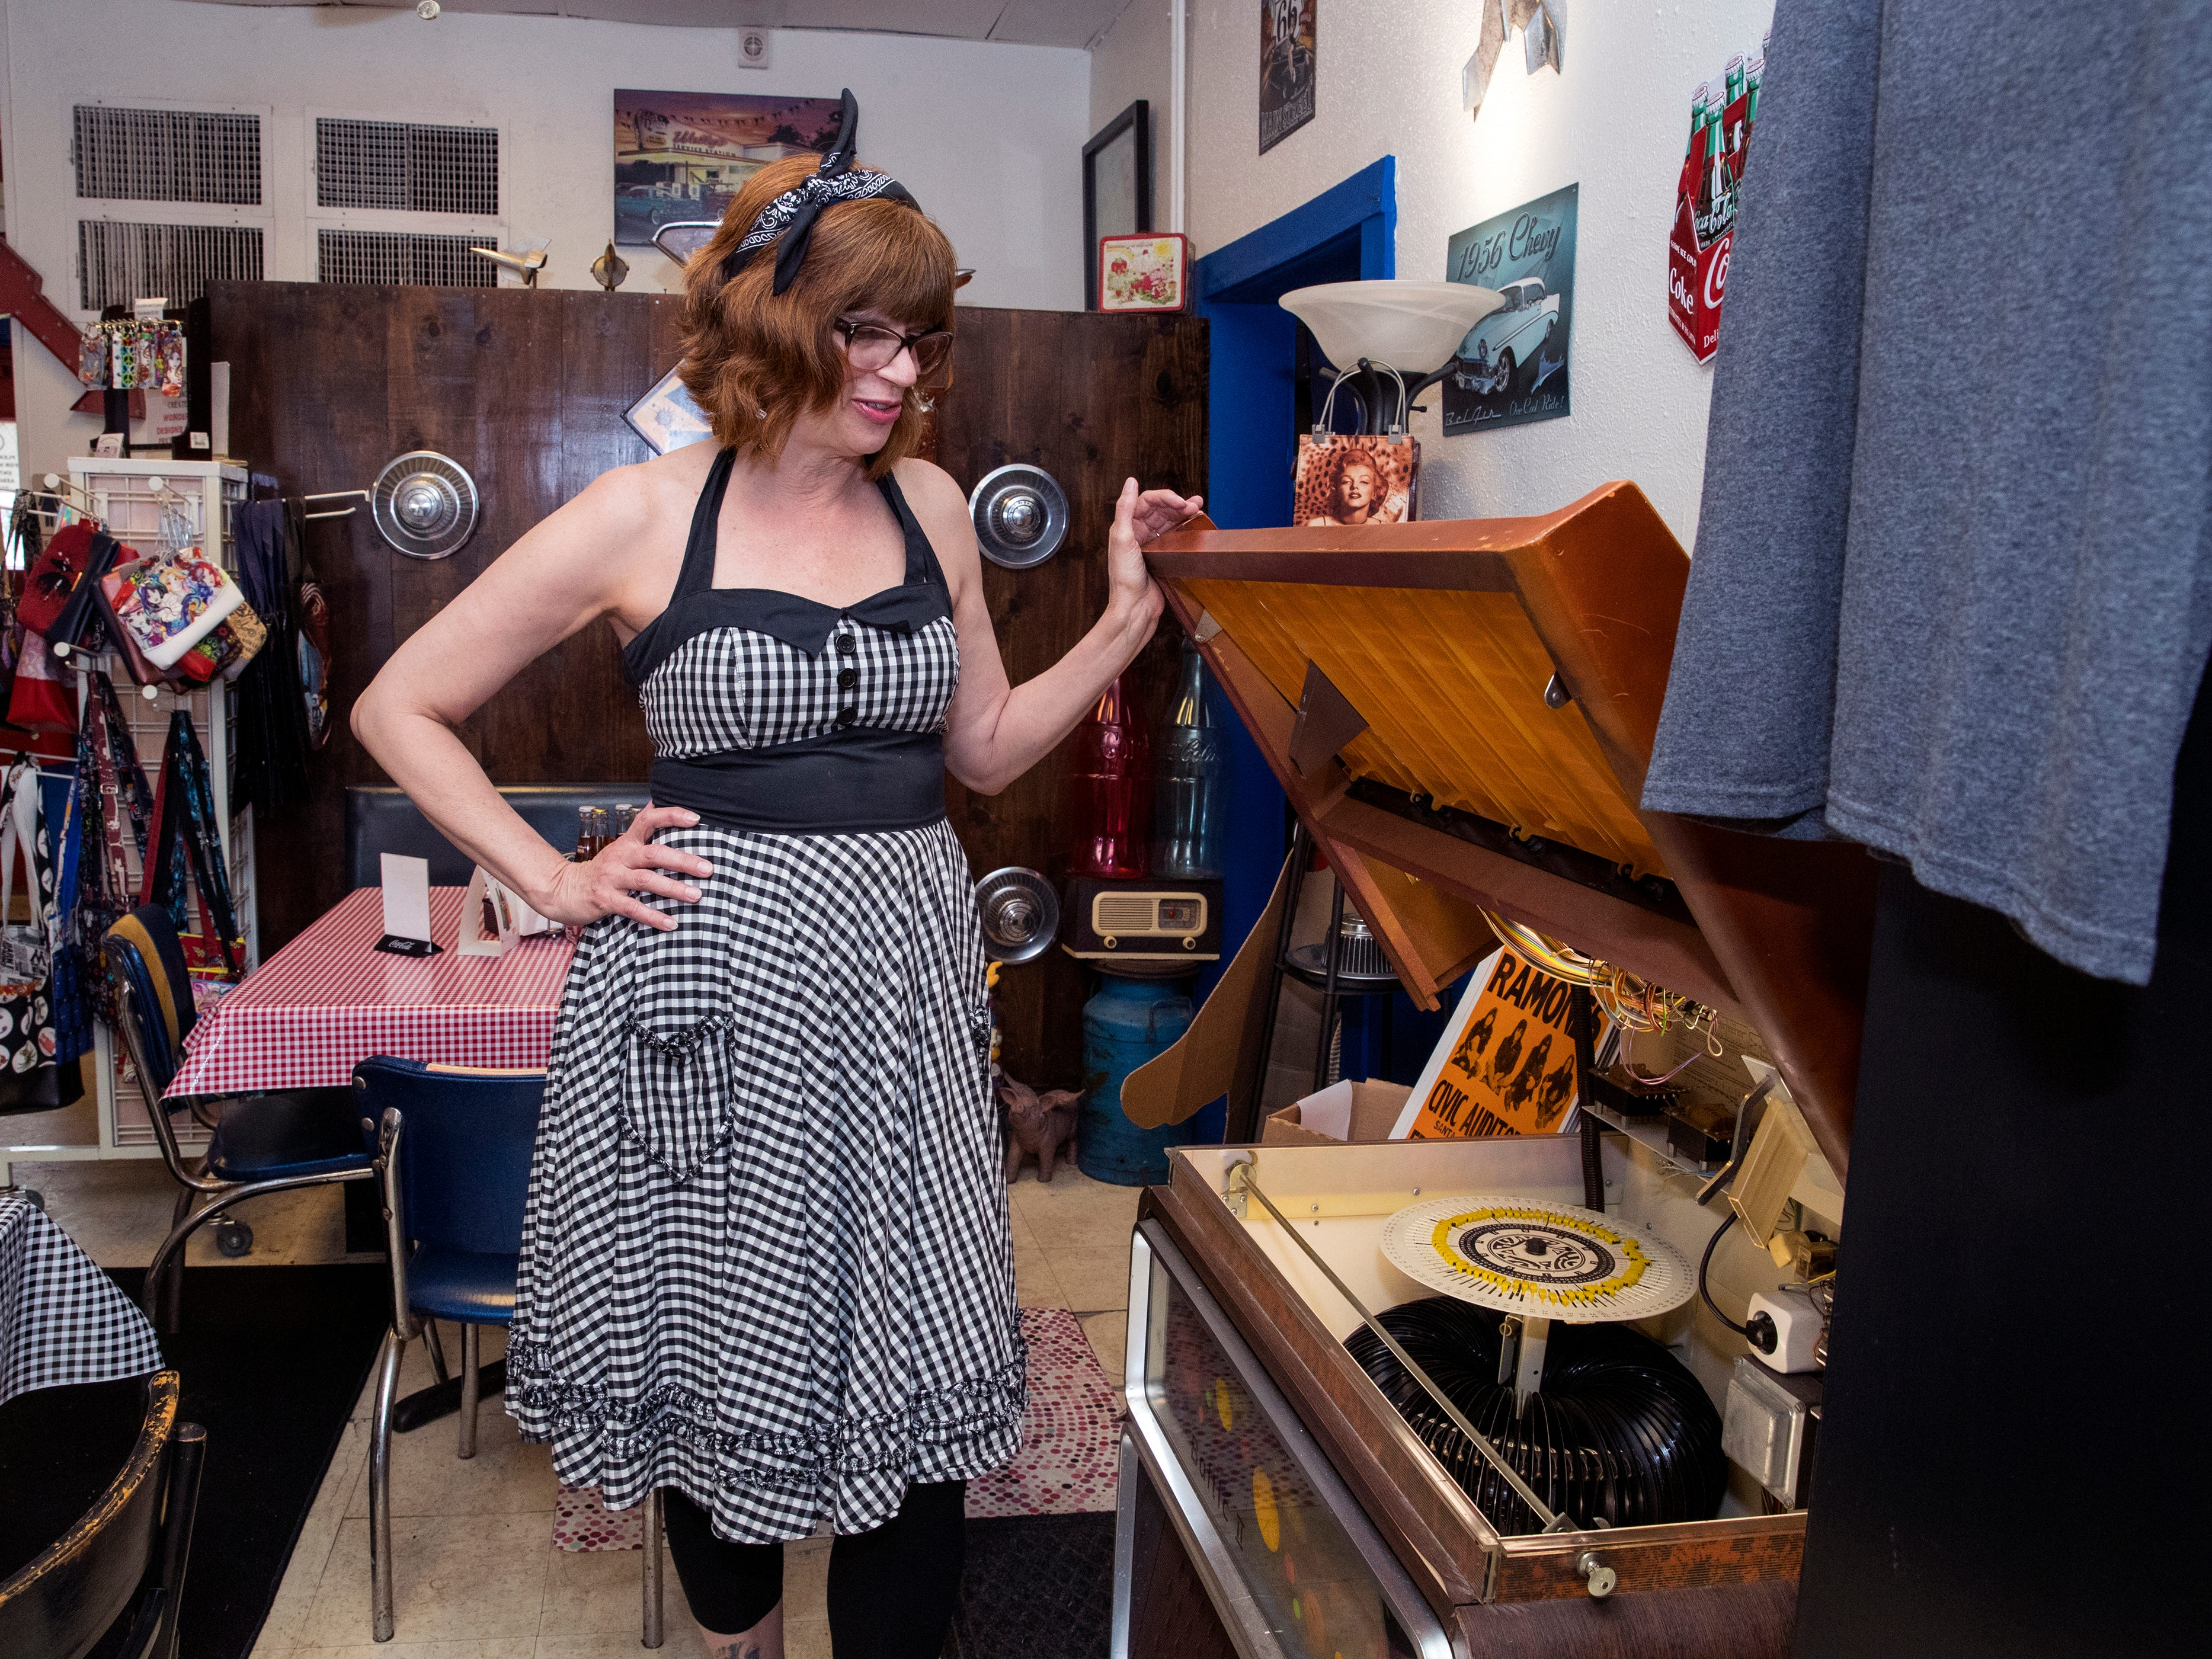 Sandi Clark, owner of Sandi's Diner on Ayers Street, shows off some of the unique items at the diner on Wednesday, February 6, 2019. The diner is hosting a grand reopening on Friday to celebrate six years of business.